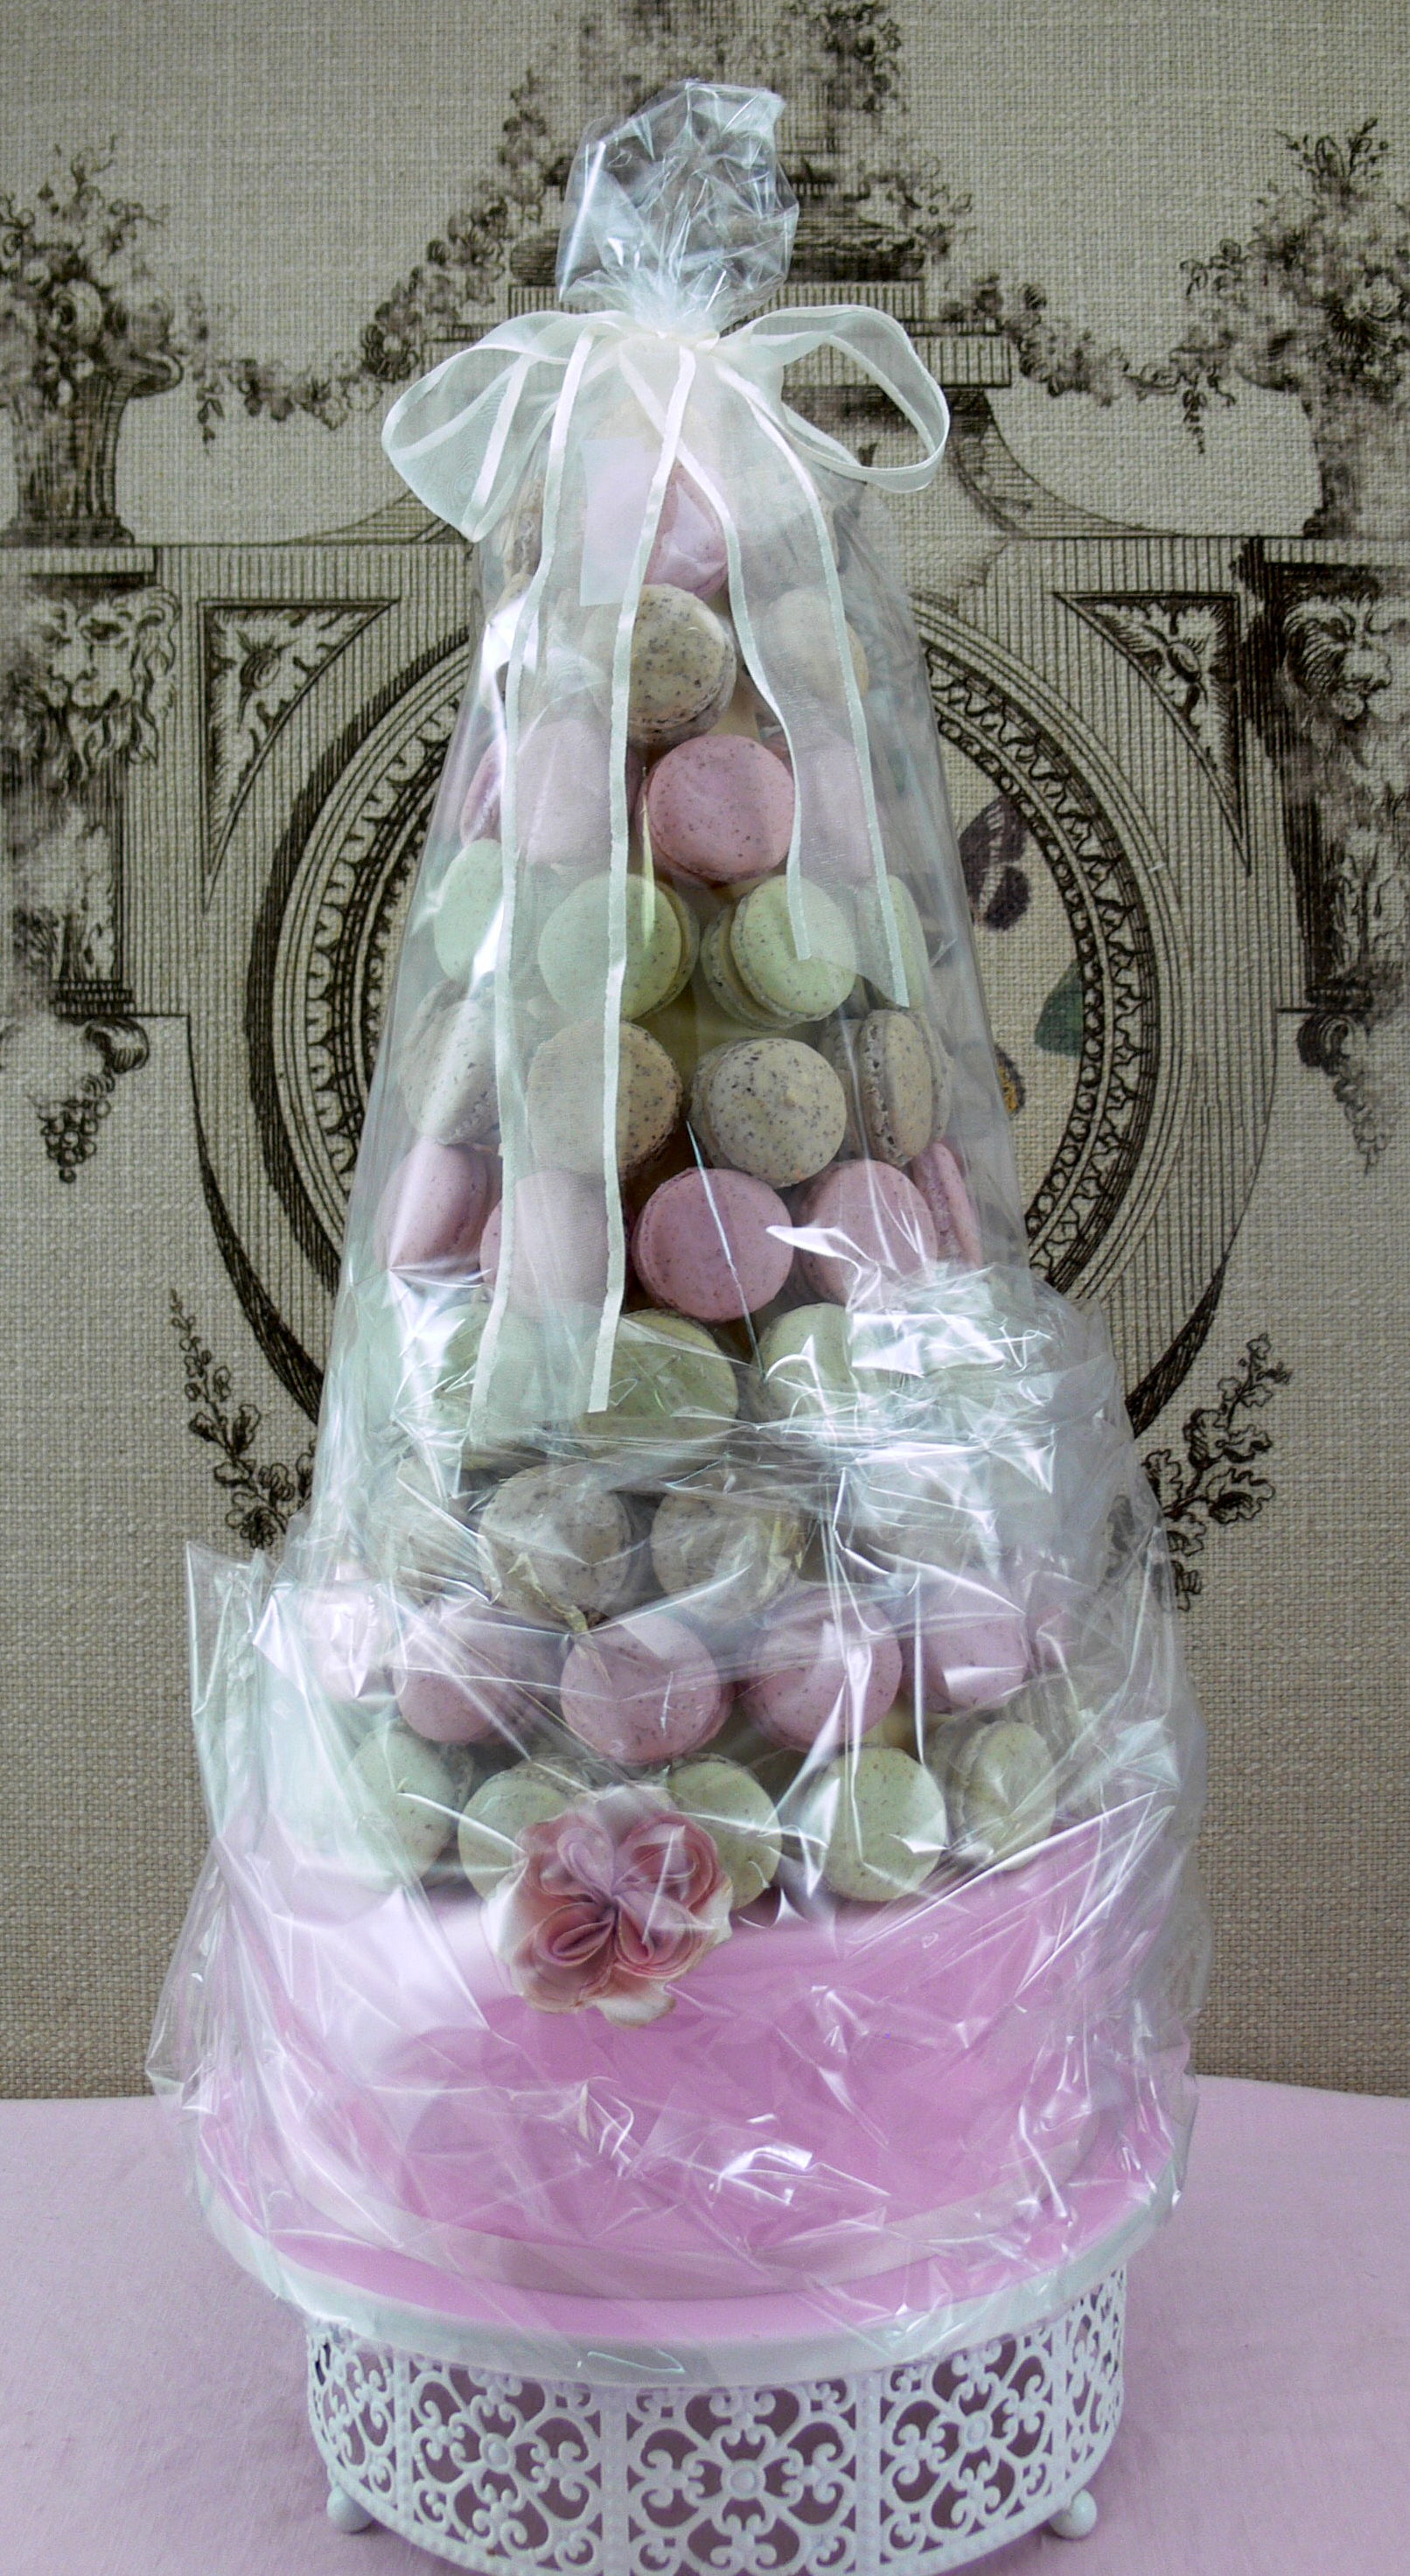 Laduree style Macaron Tower wrapped for delivery in cellophane and ribbon.JPG